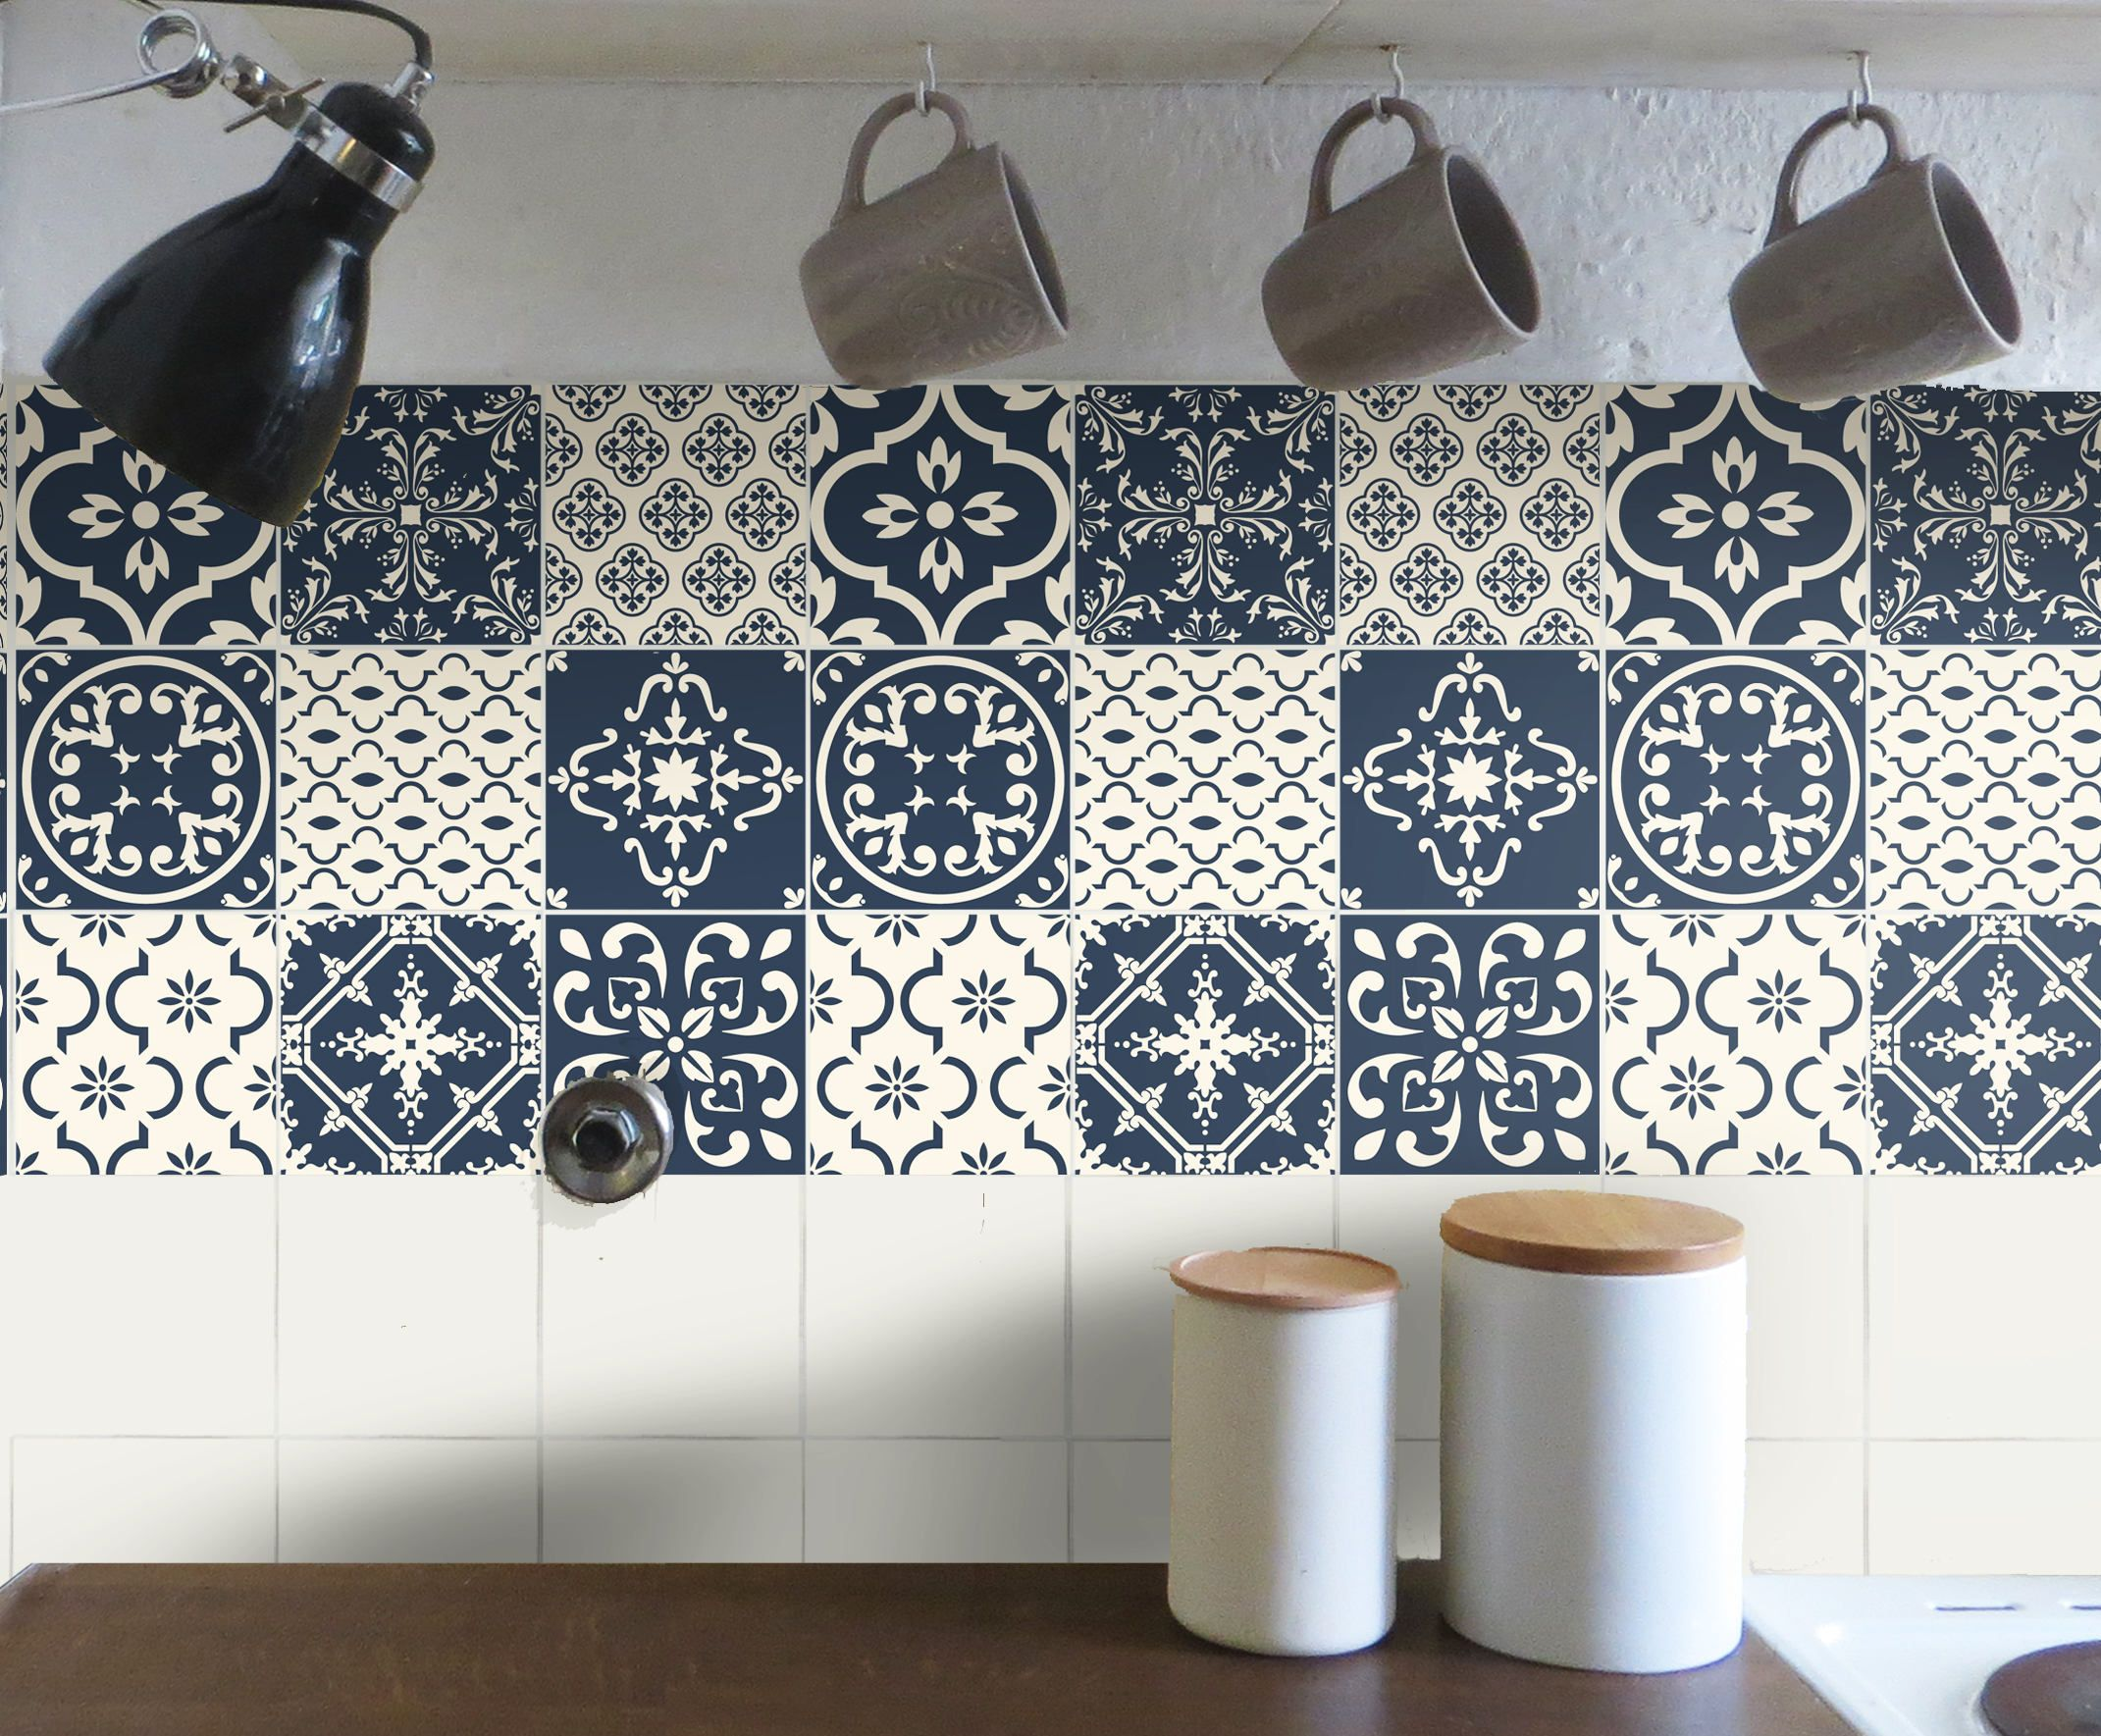 Pin by Pippi Langstrumpf on Wohnung | Pinterest | Tile decals